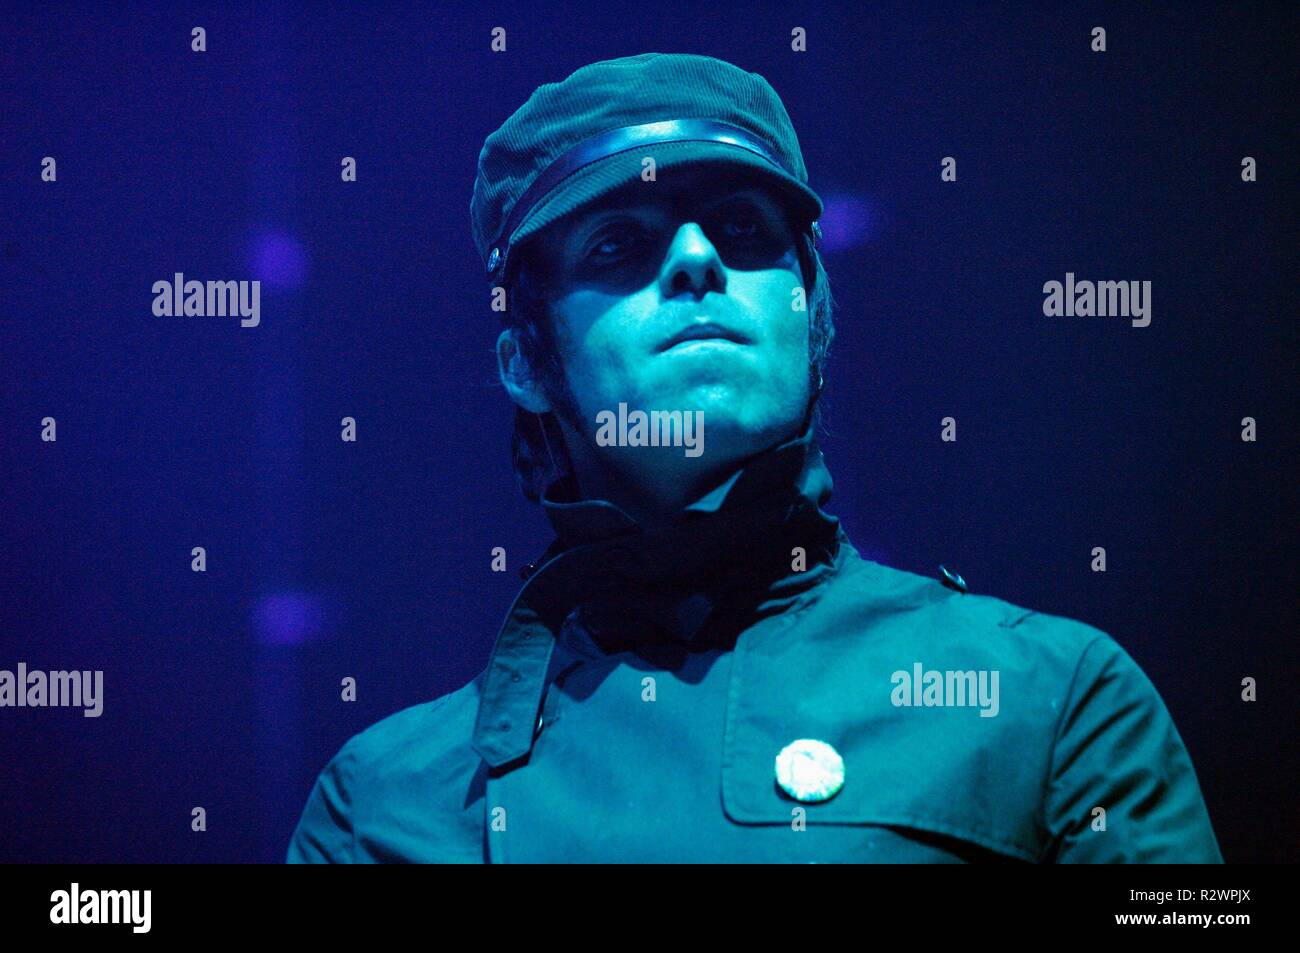 LIAM GALLAGHER  OASIS 20 October 2005 CTS61894 Allstar/Cinetext/HAMBURG - Stock Image